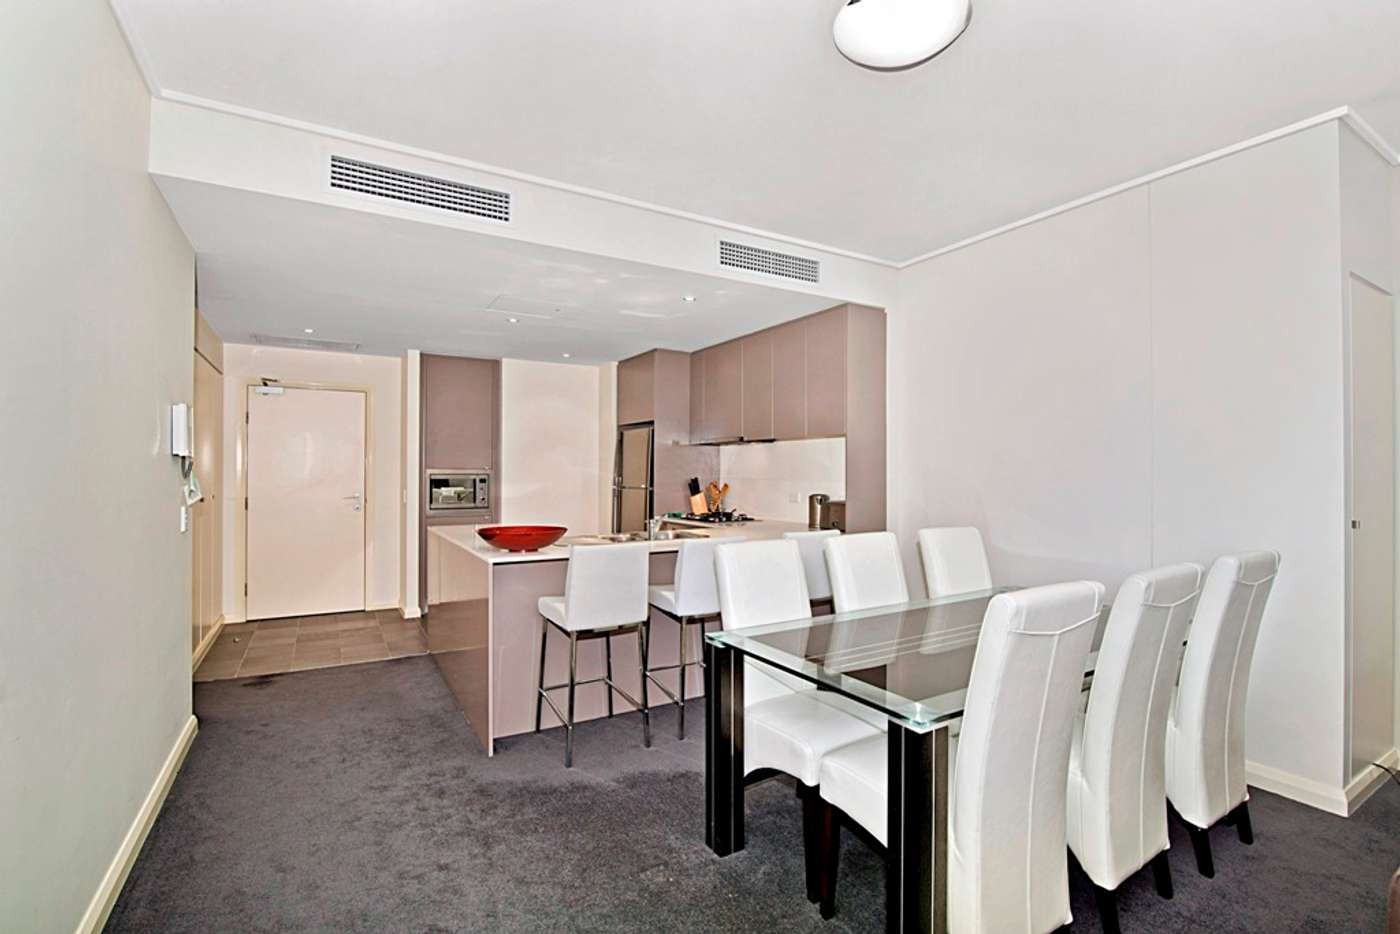 Main view of Homely apartment listing, 471/4 The Crescent, Wentworth Point NSW 2127